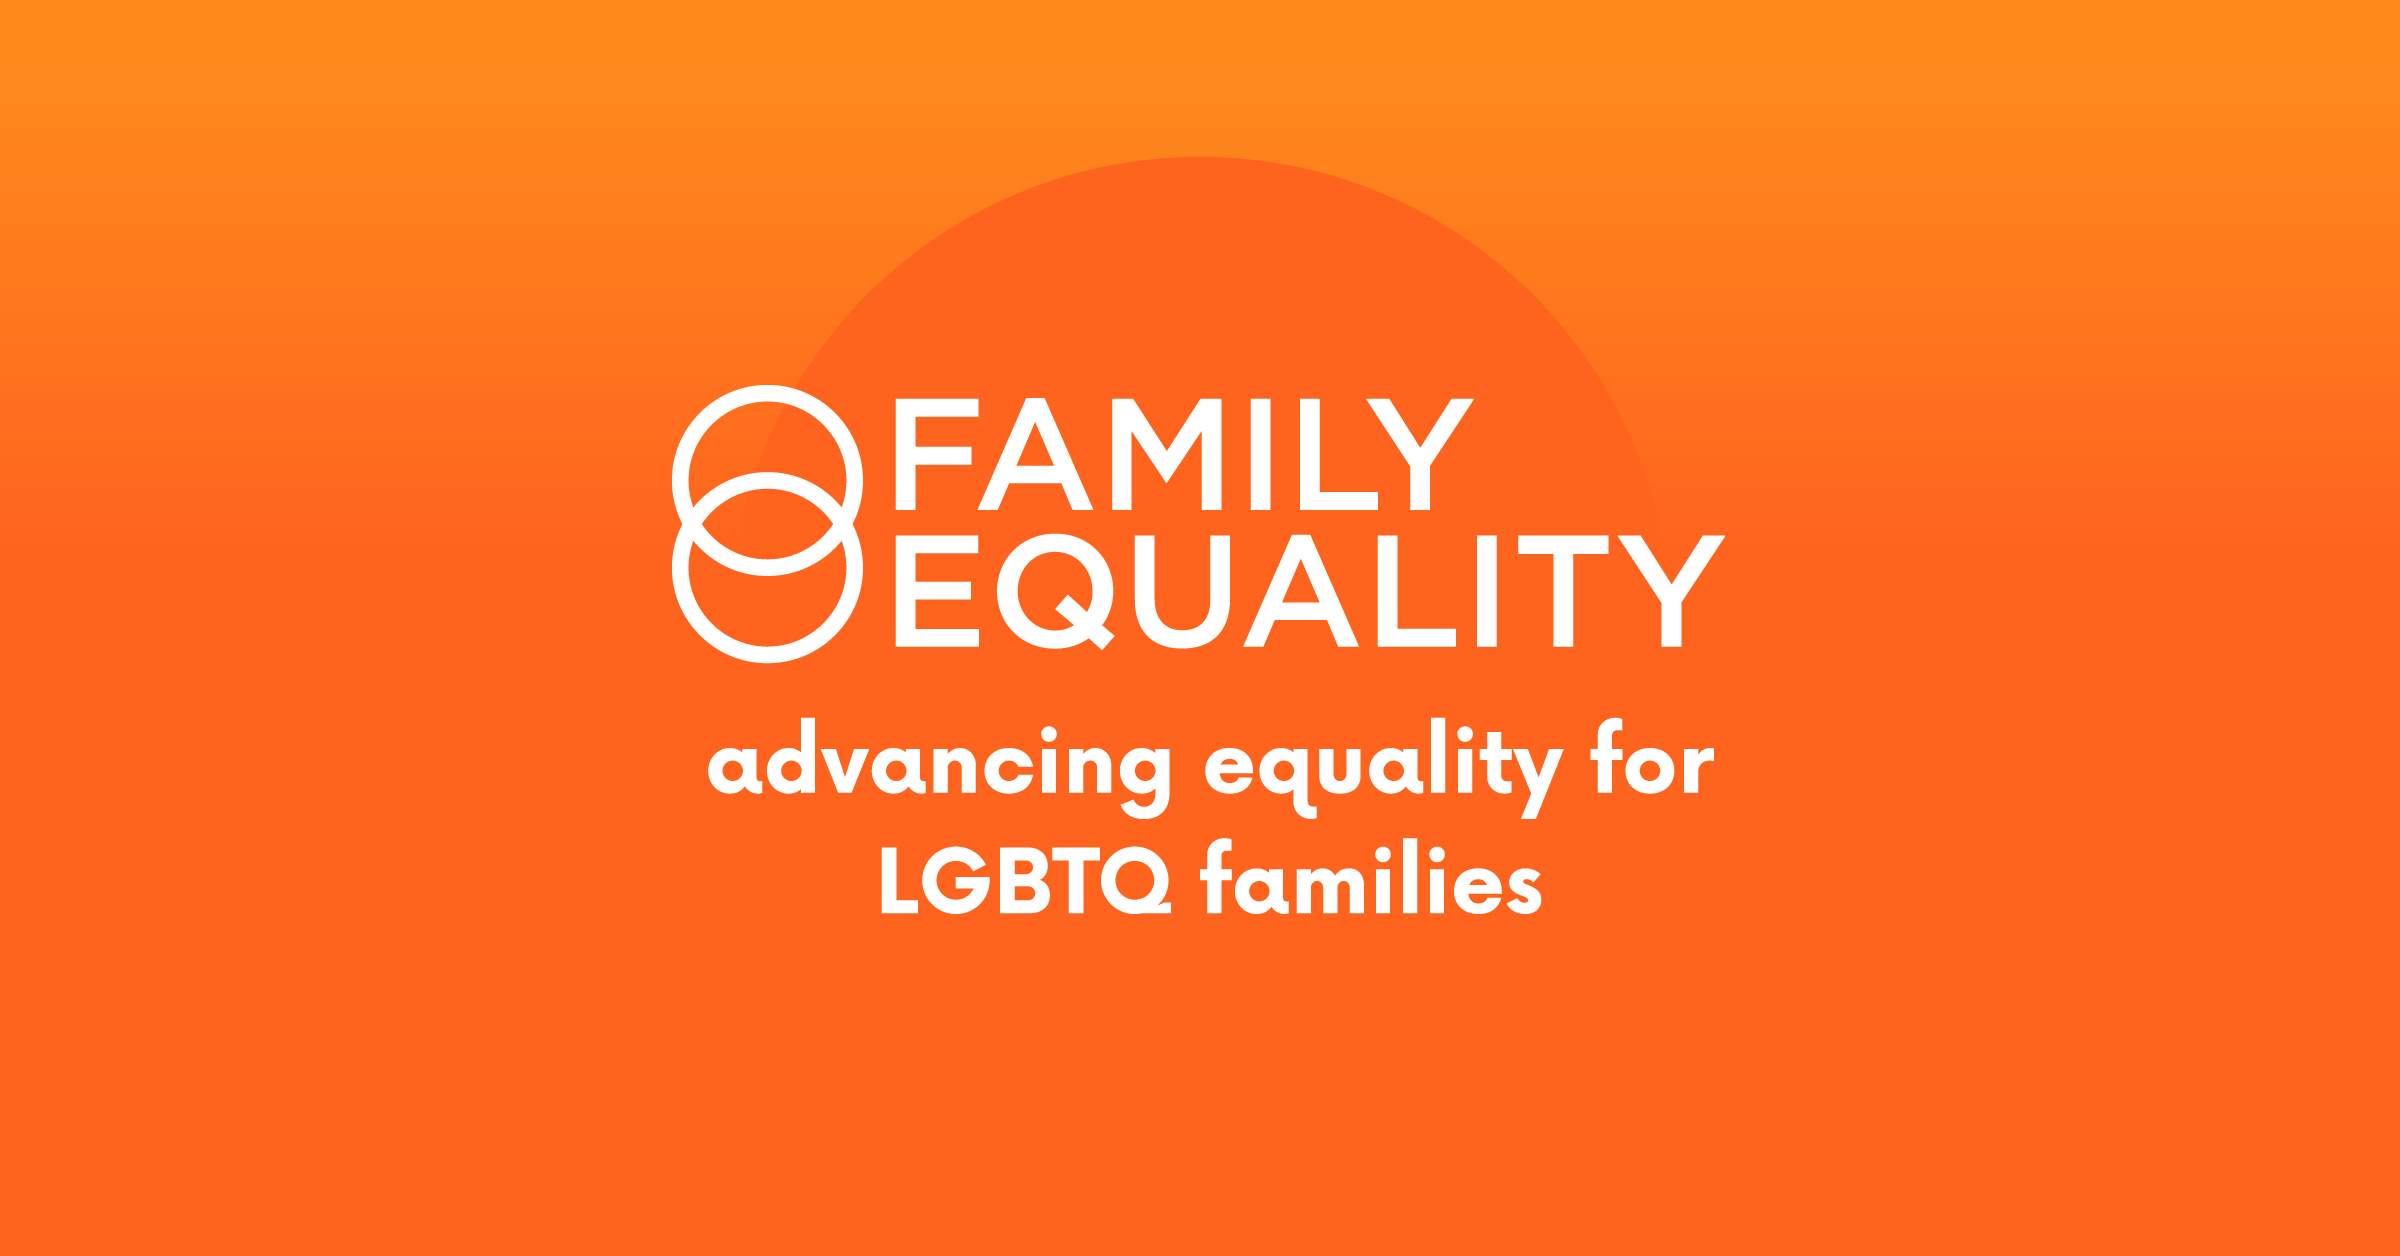 Family Equality - Advancing Equality for LGBTQ Families